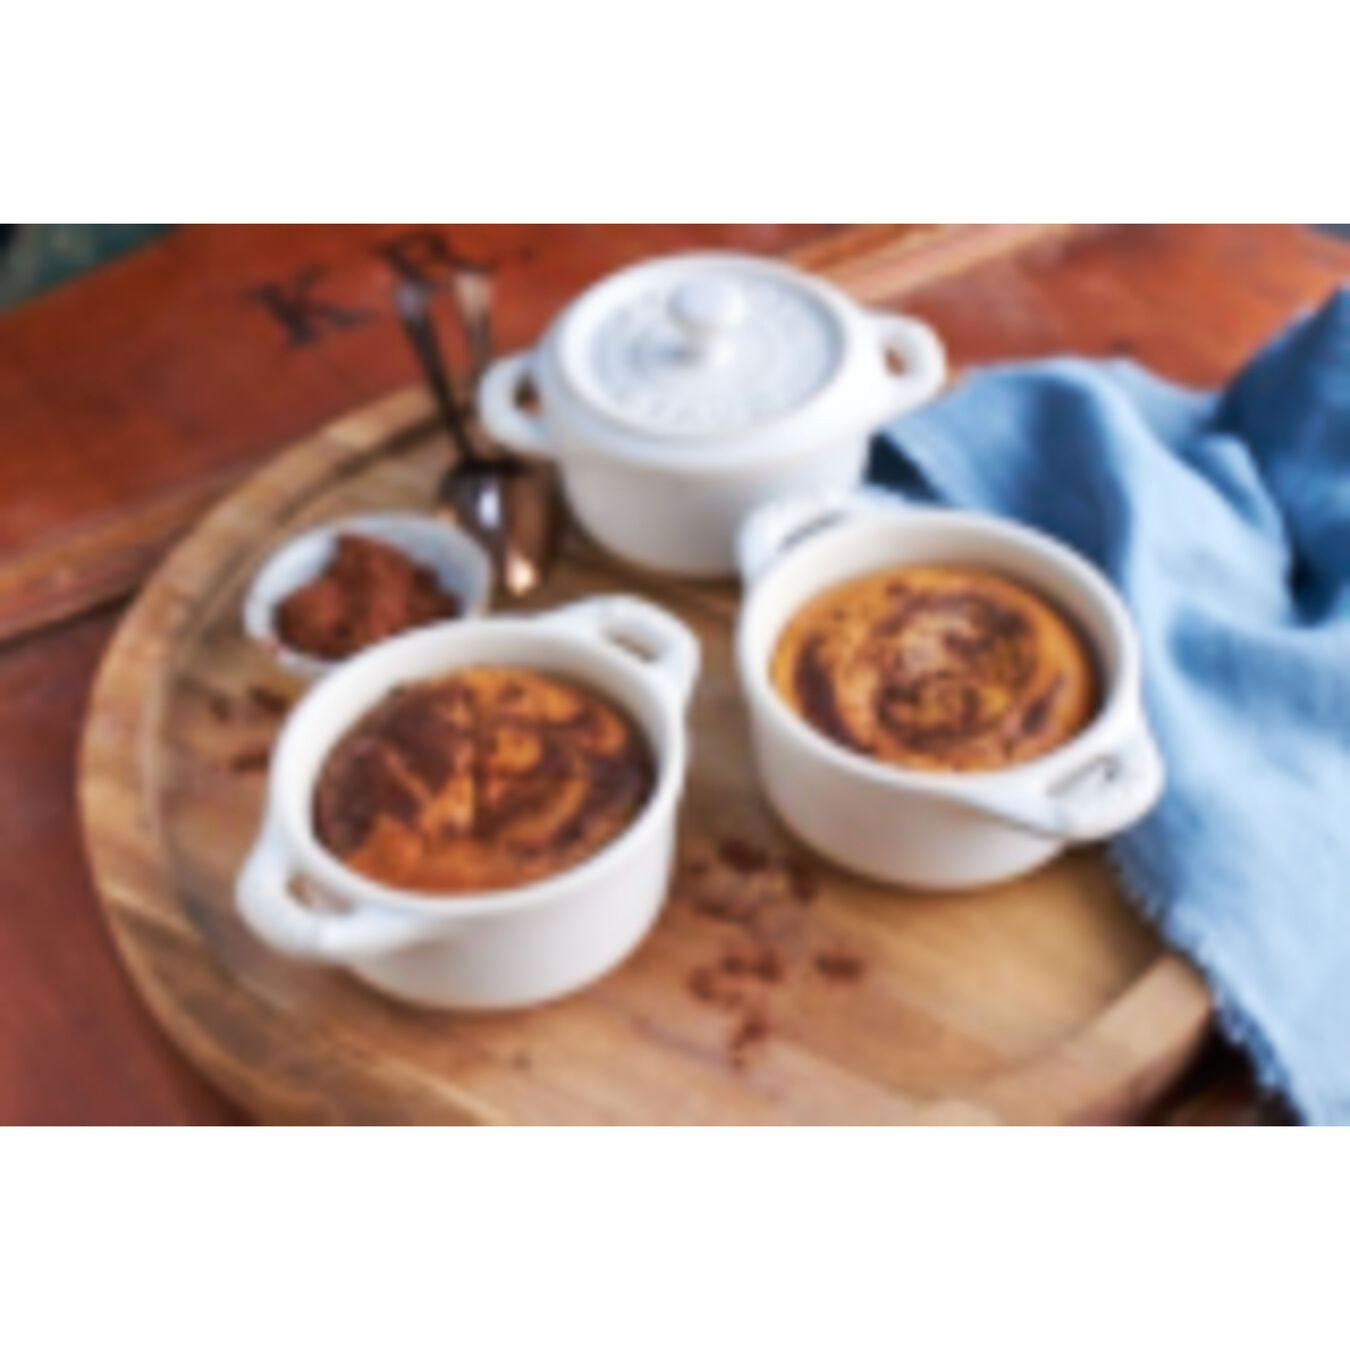 3-pc Mini Round Cocotte Set - White,,large 3